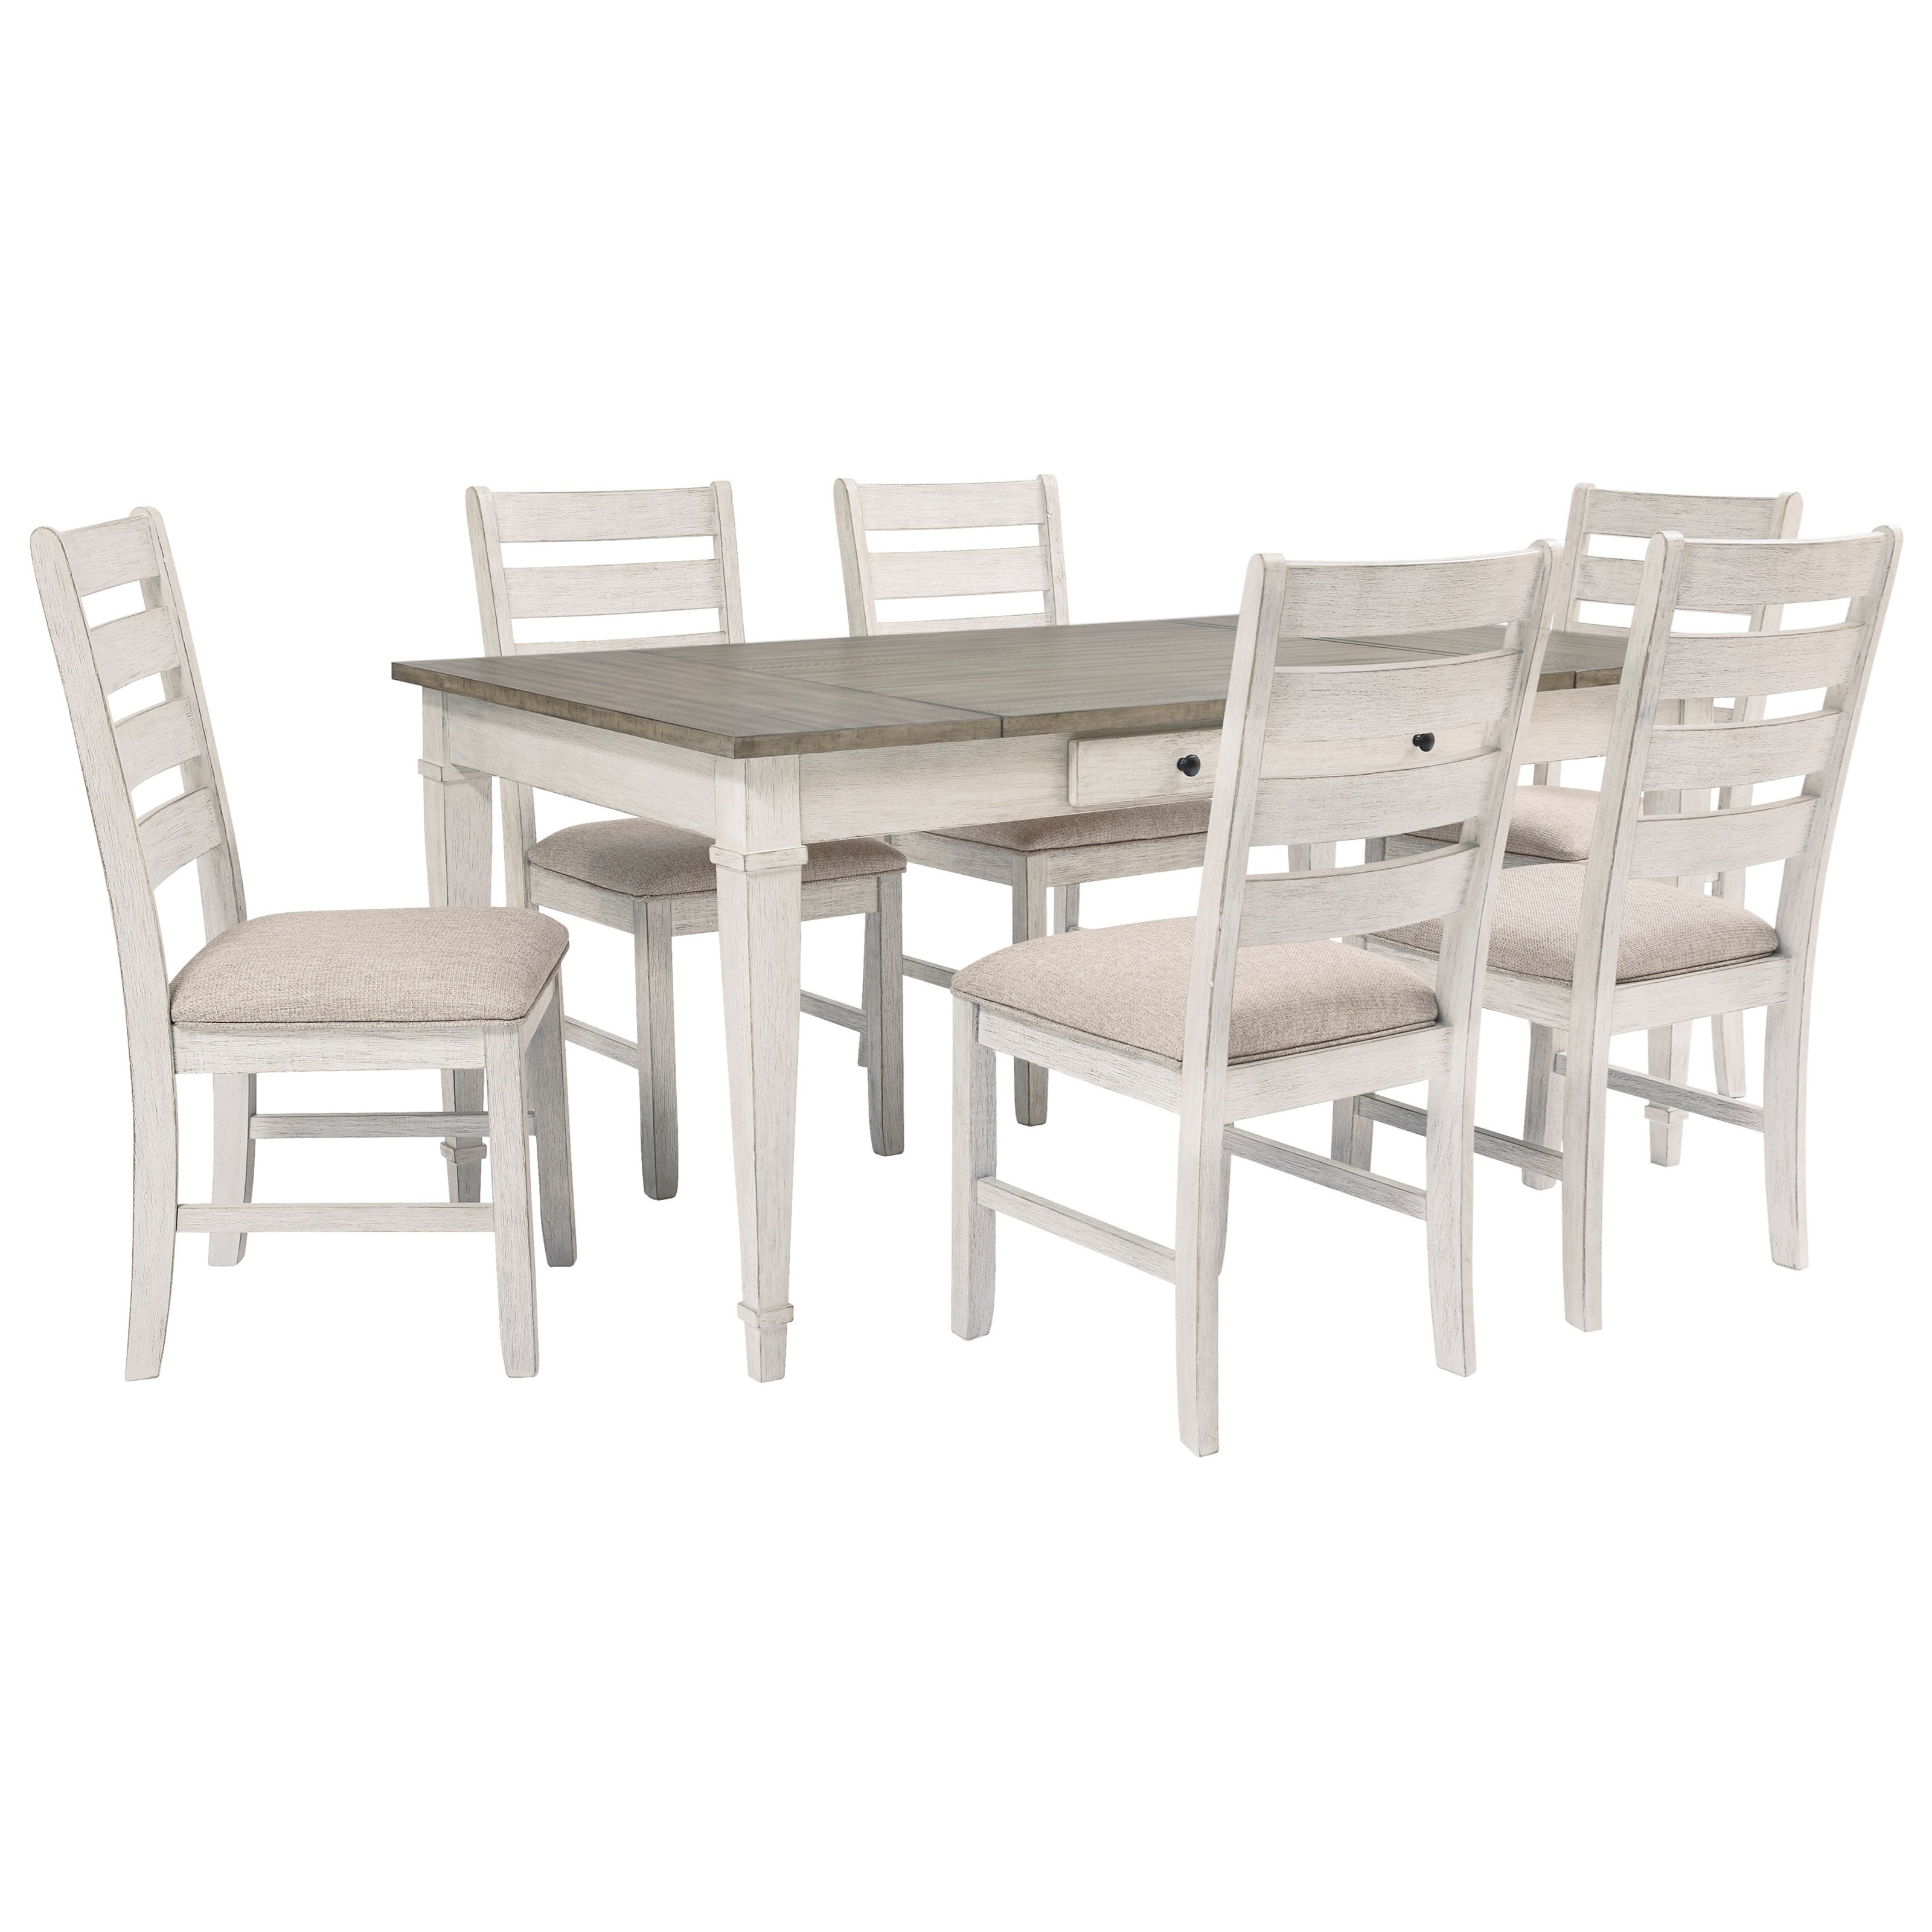 Skempton 7-Piece Rect. Dining Table Set w/ Storage by Signature Design by Ashley at Zak's Warehouse Clearance Center